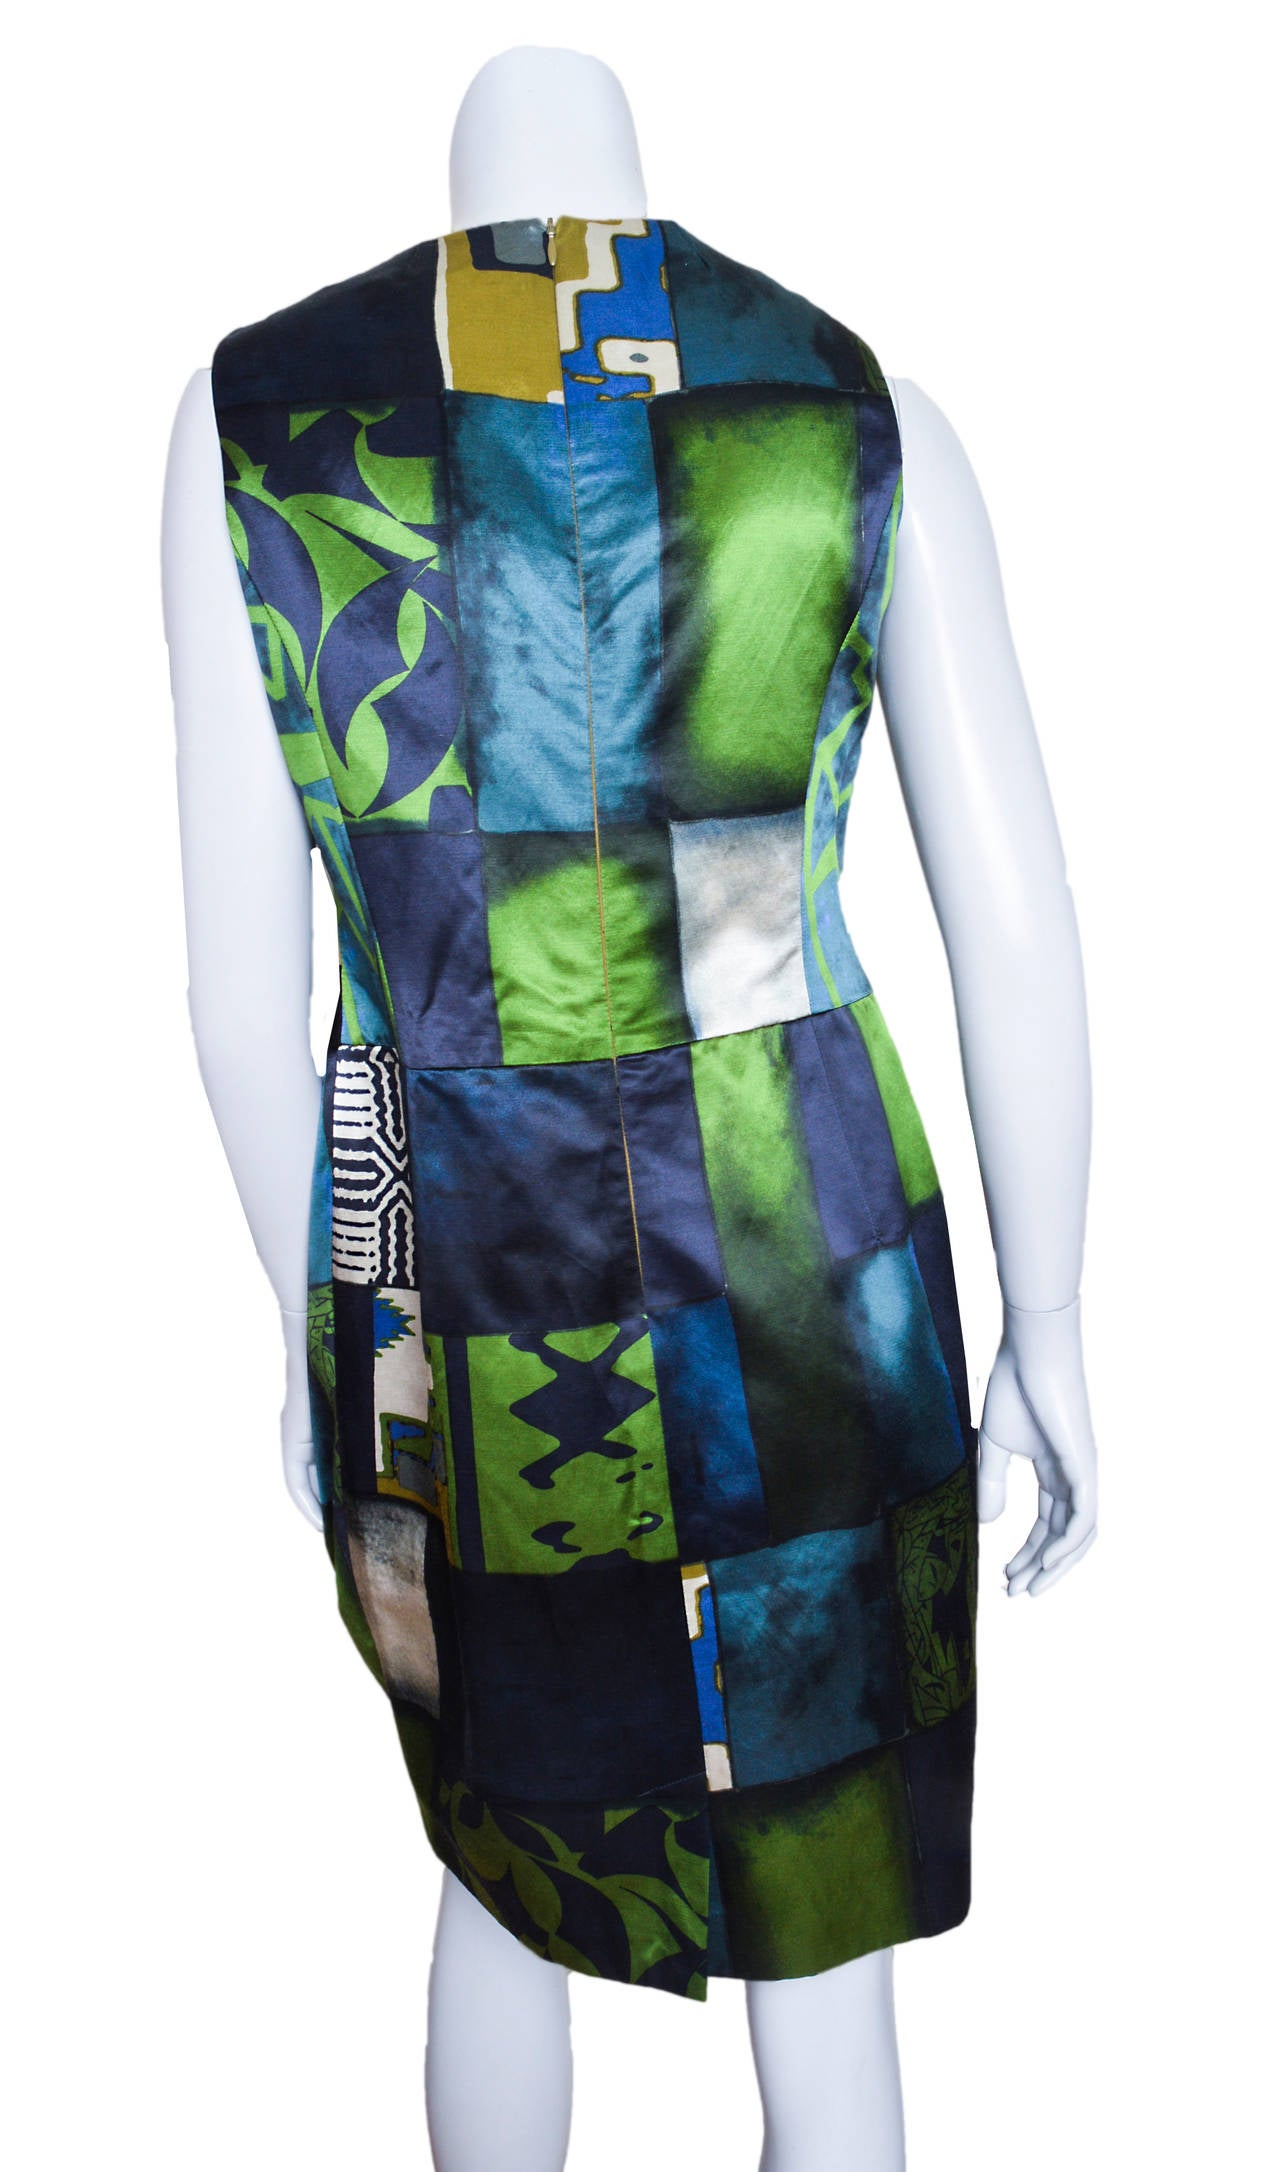 Etro Geometric Print Satin Dress with Medallion Belt In Excellent Condition For Sale In San Francisco, CA